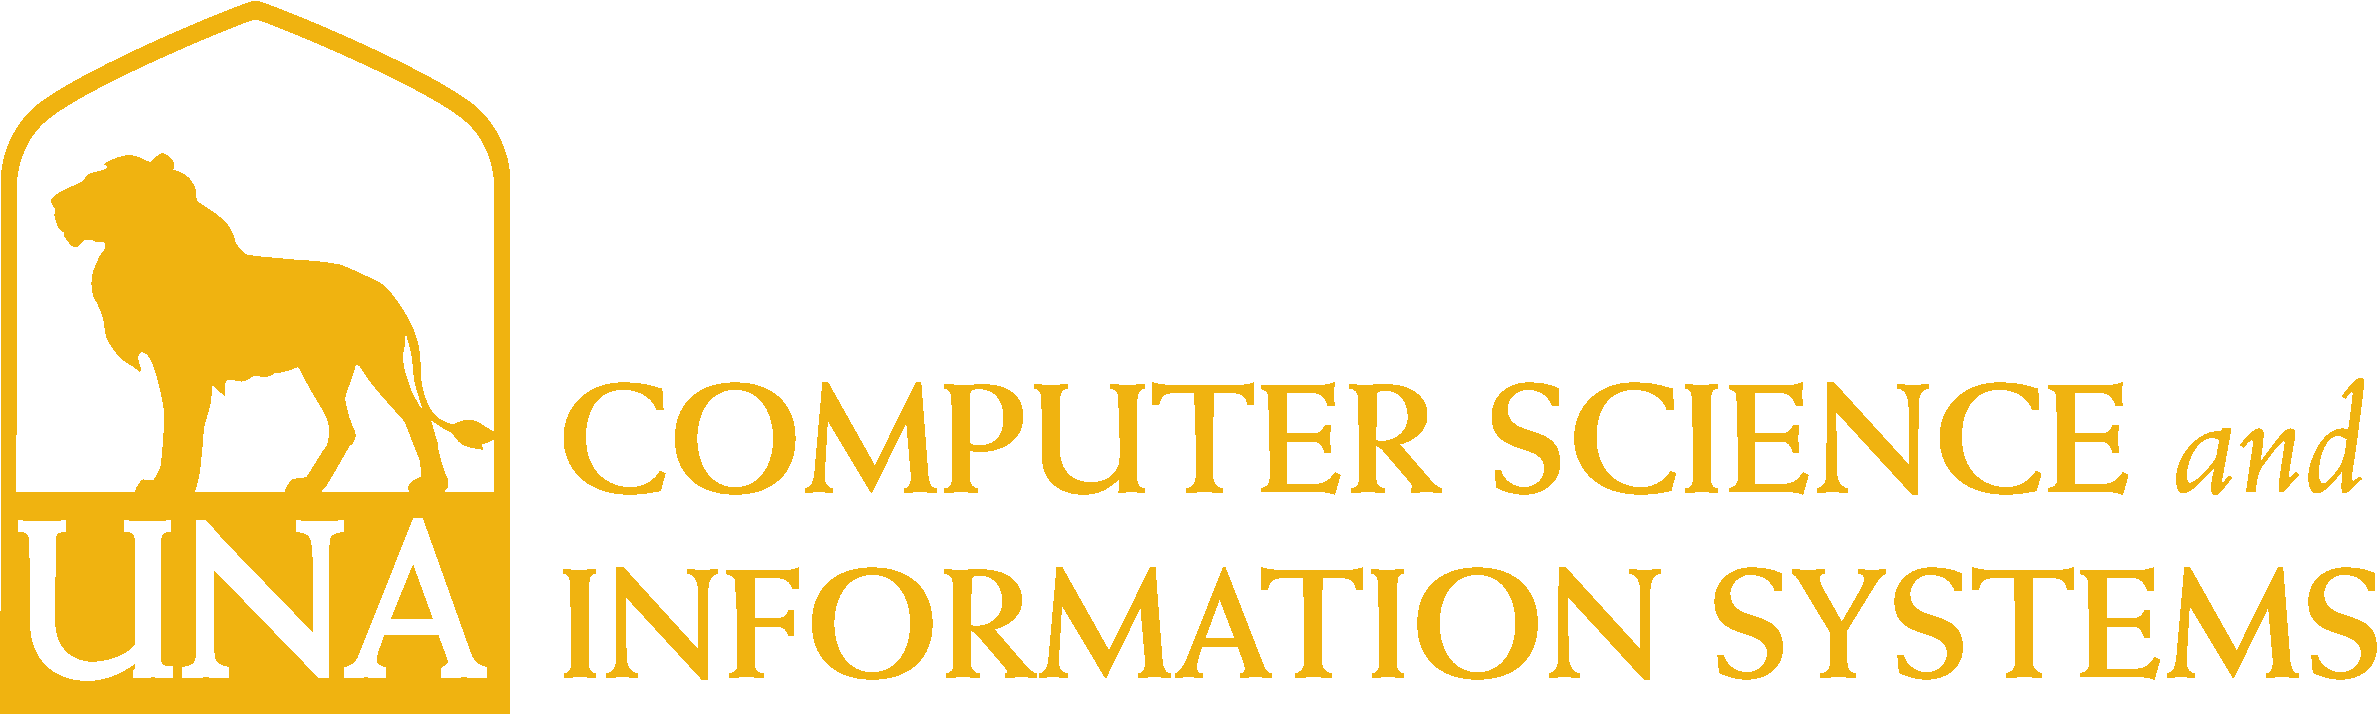 College of Business - Computer Science and Information Systems Logo - Gold - Version 3